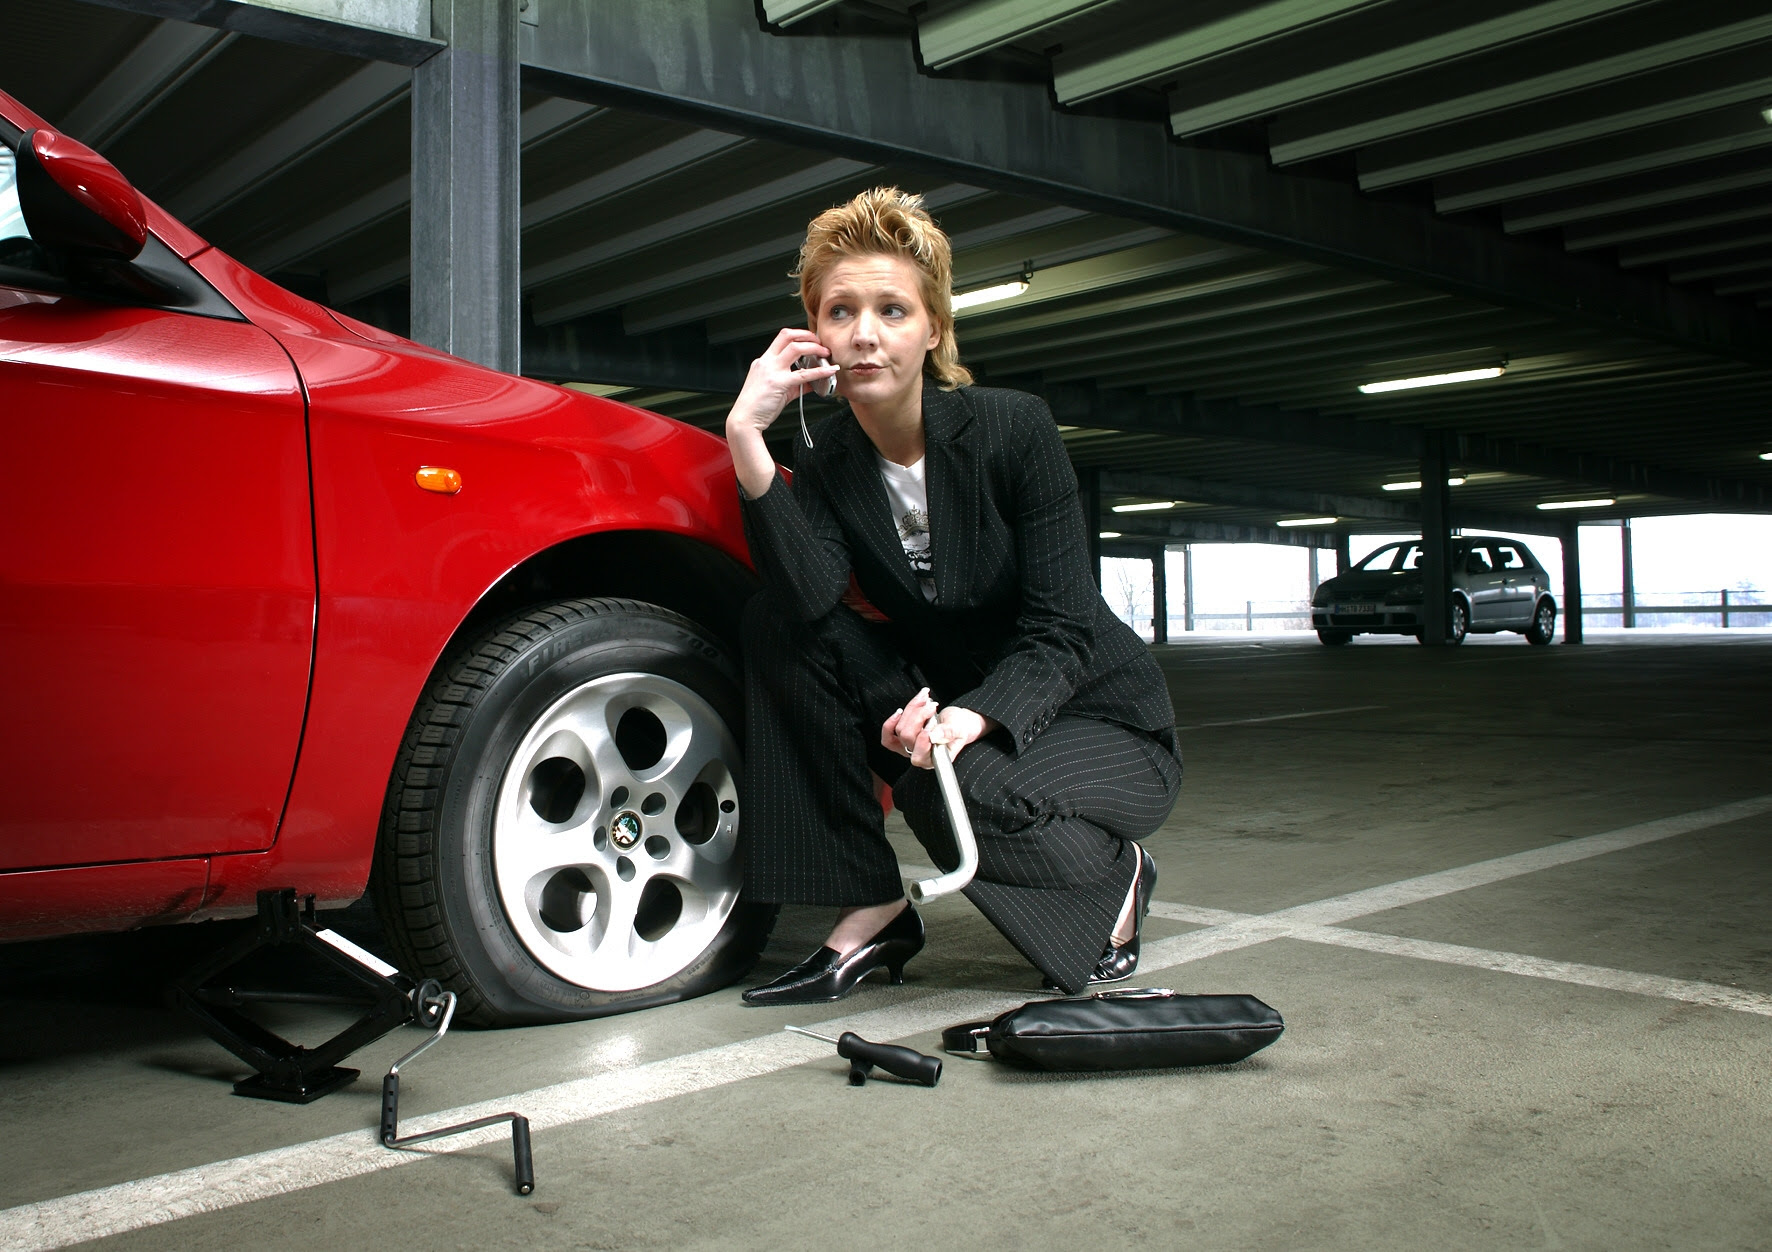 Flat Tire Change Service Naperville Aurora Plainfield Bolingbrook Il South West Suburbs